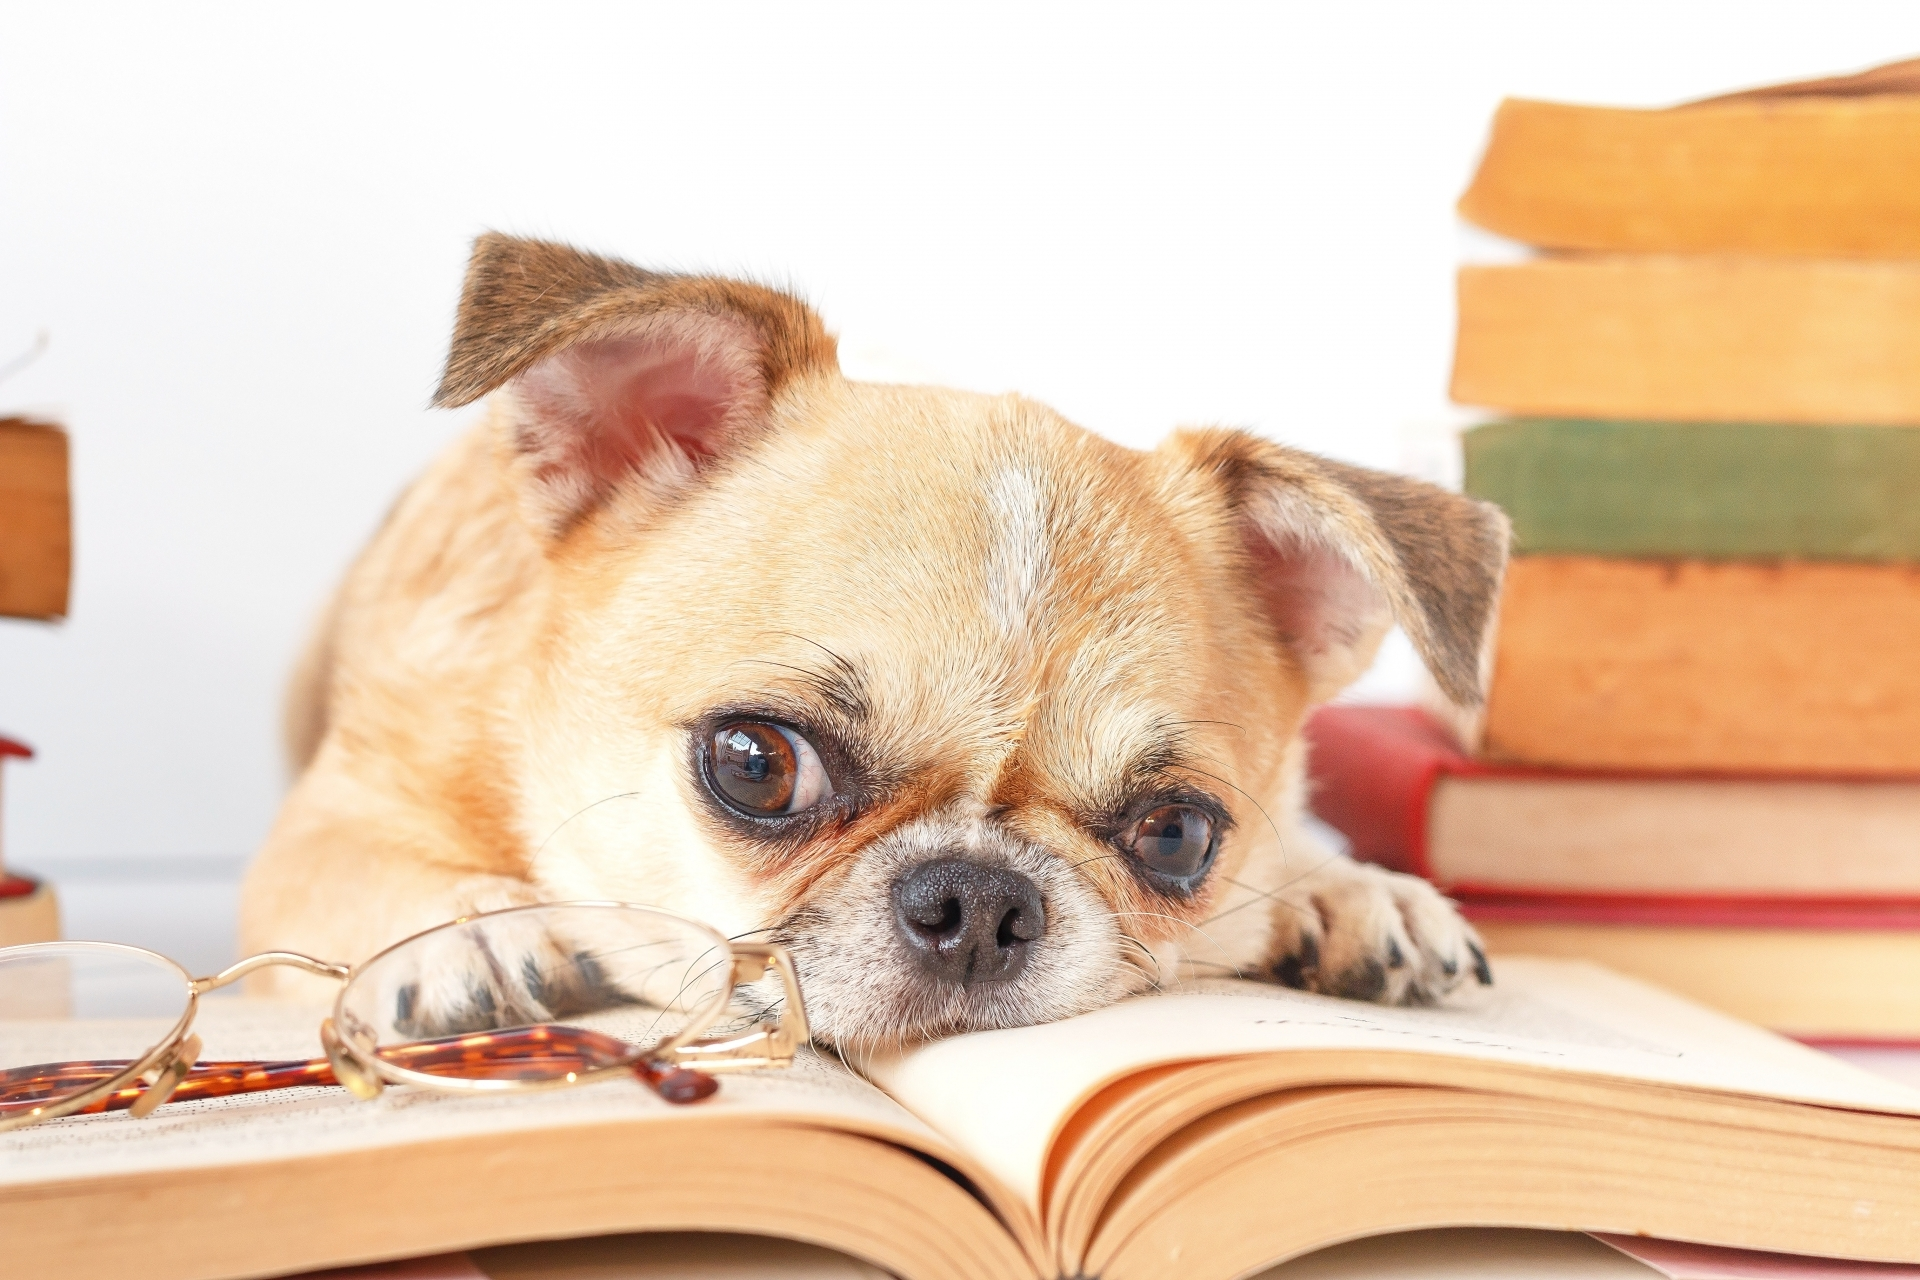 Celebrate International Dog Day with this collection of doggy books about our favourite furry friends